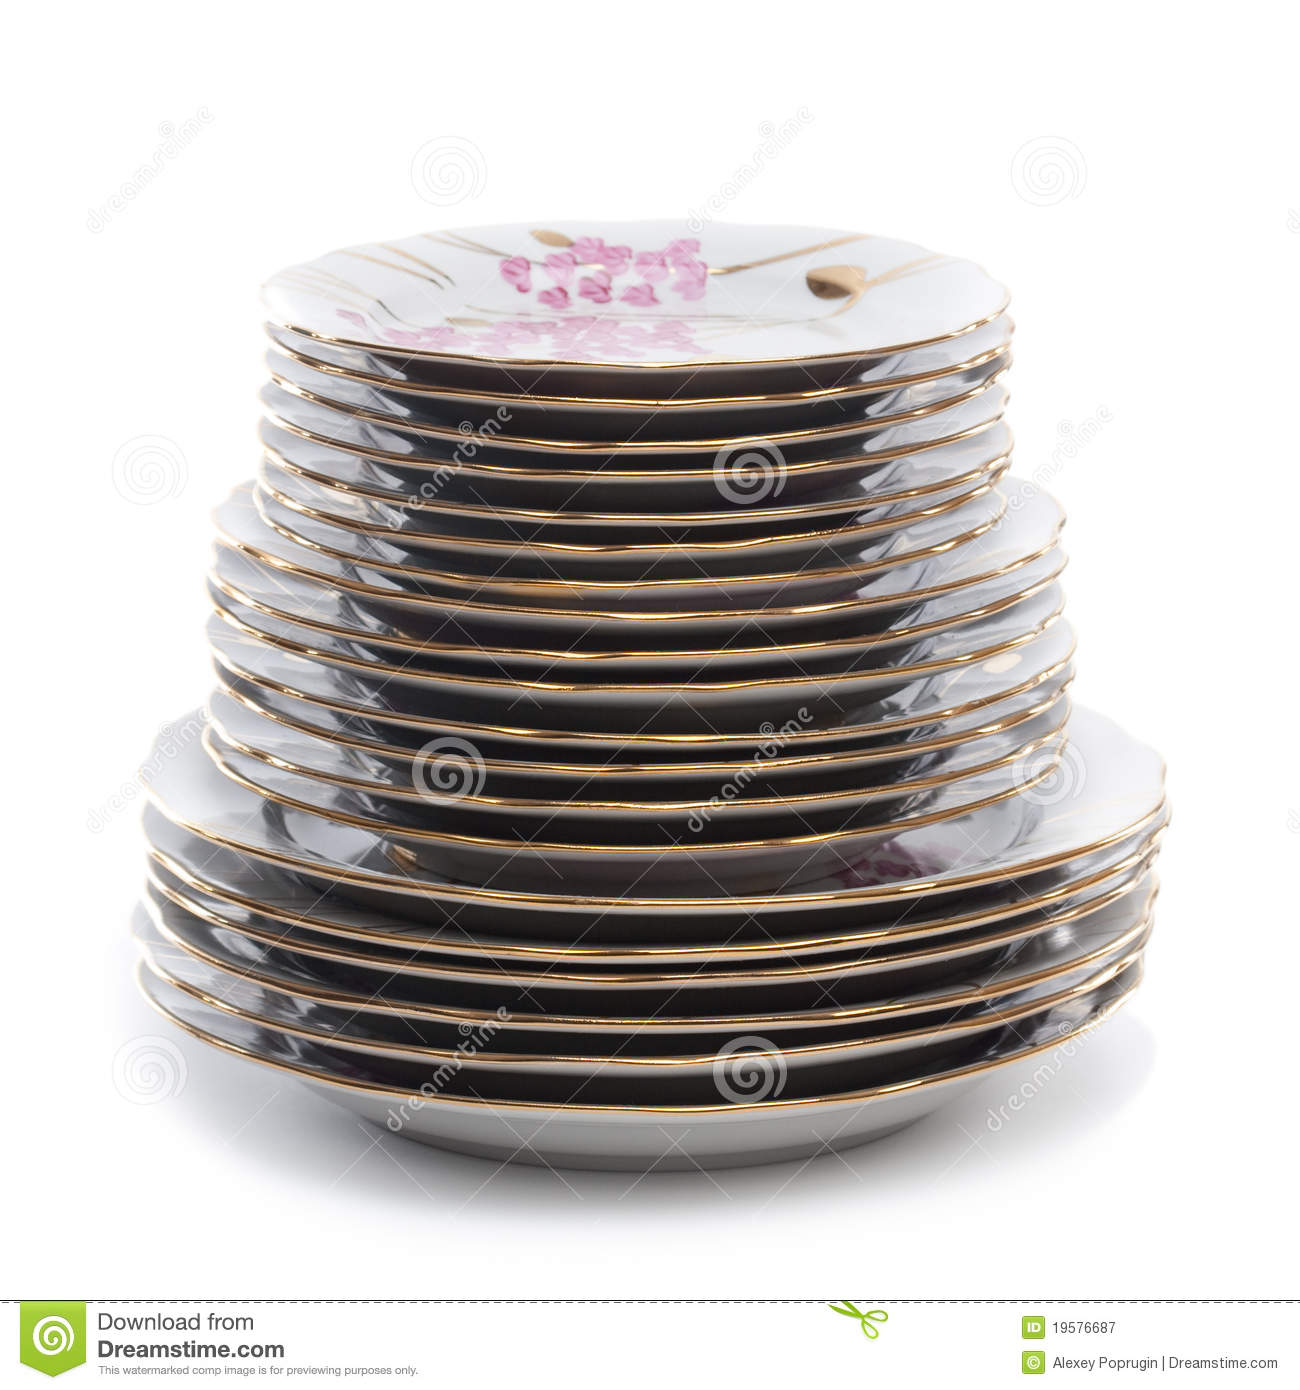 Stack Of Plates Royalty Free Stock Photography   Image  19576687